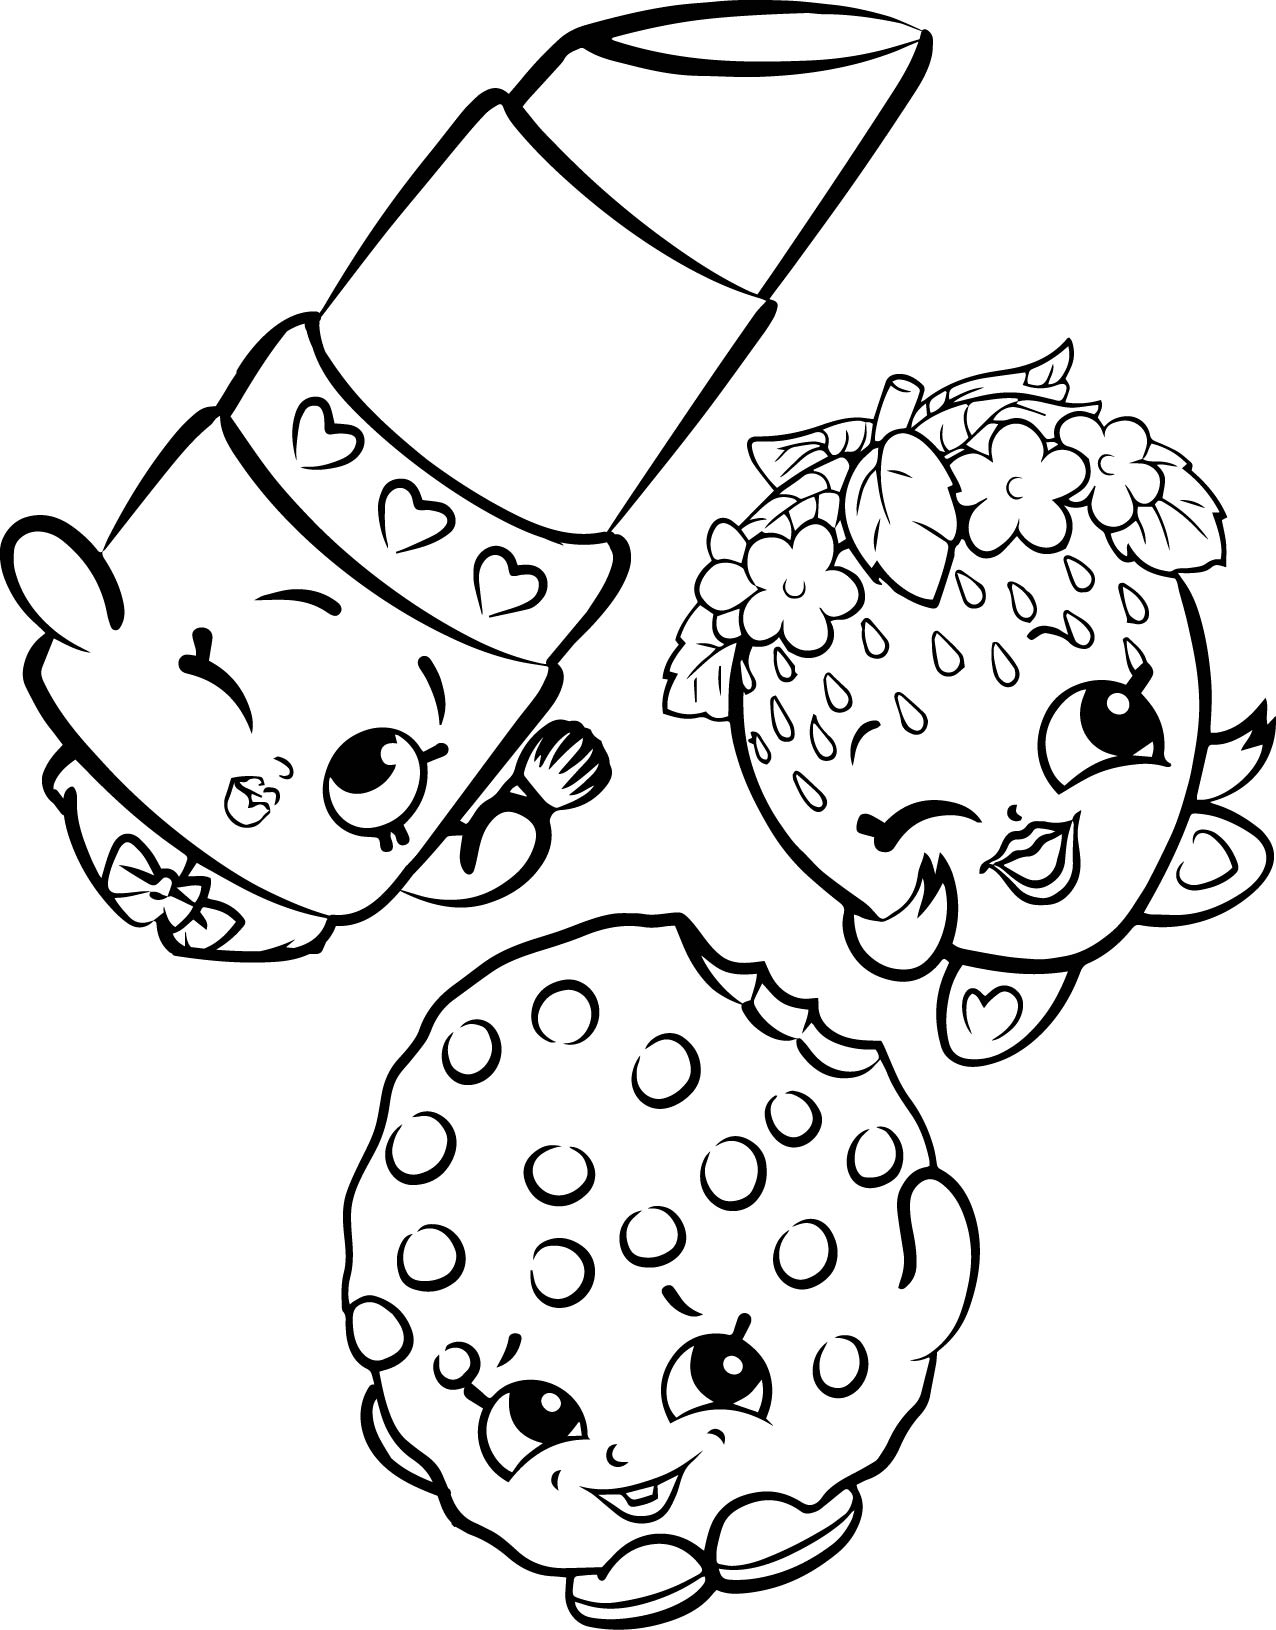 Free Shopkins Printables Coloring Pages Download 4 Shopkins Printable Of 40 Printable Shopkins Coloring Pages Gallery